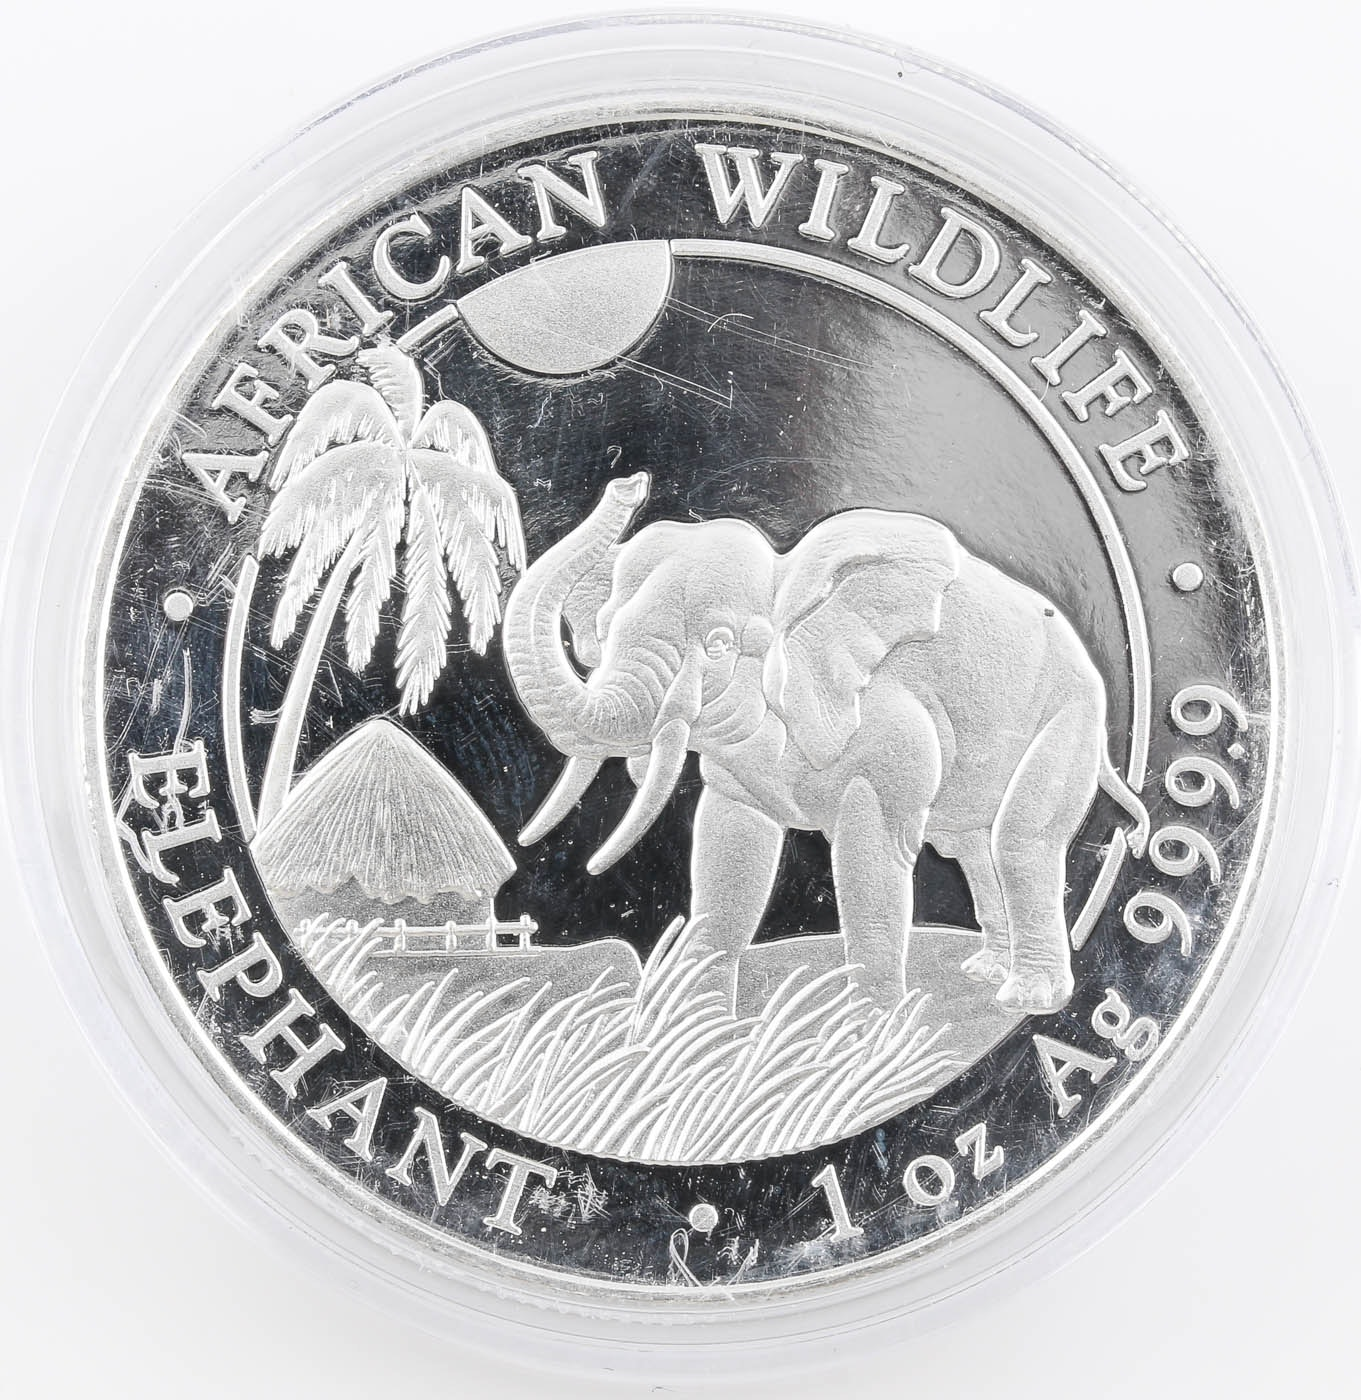 2017 African Wildlife Elephant 100 Shillings Silver Coin from Somali Republic